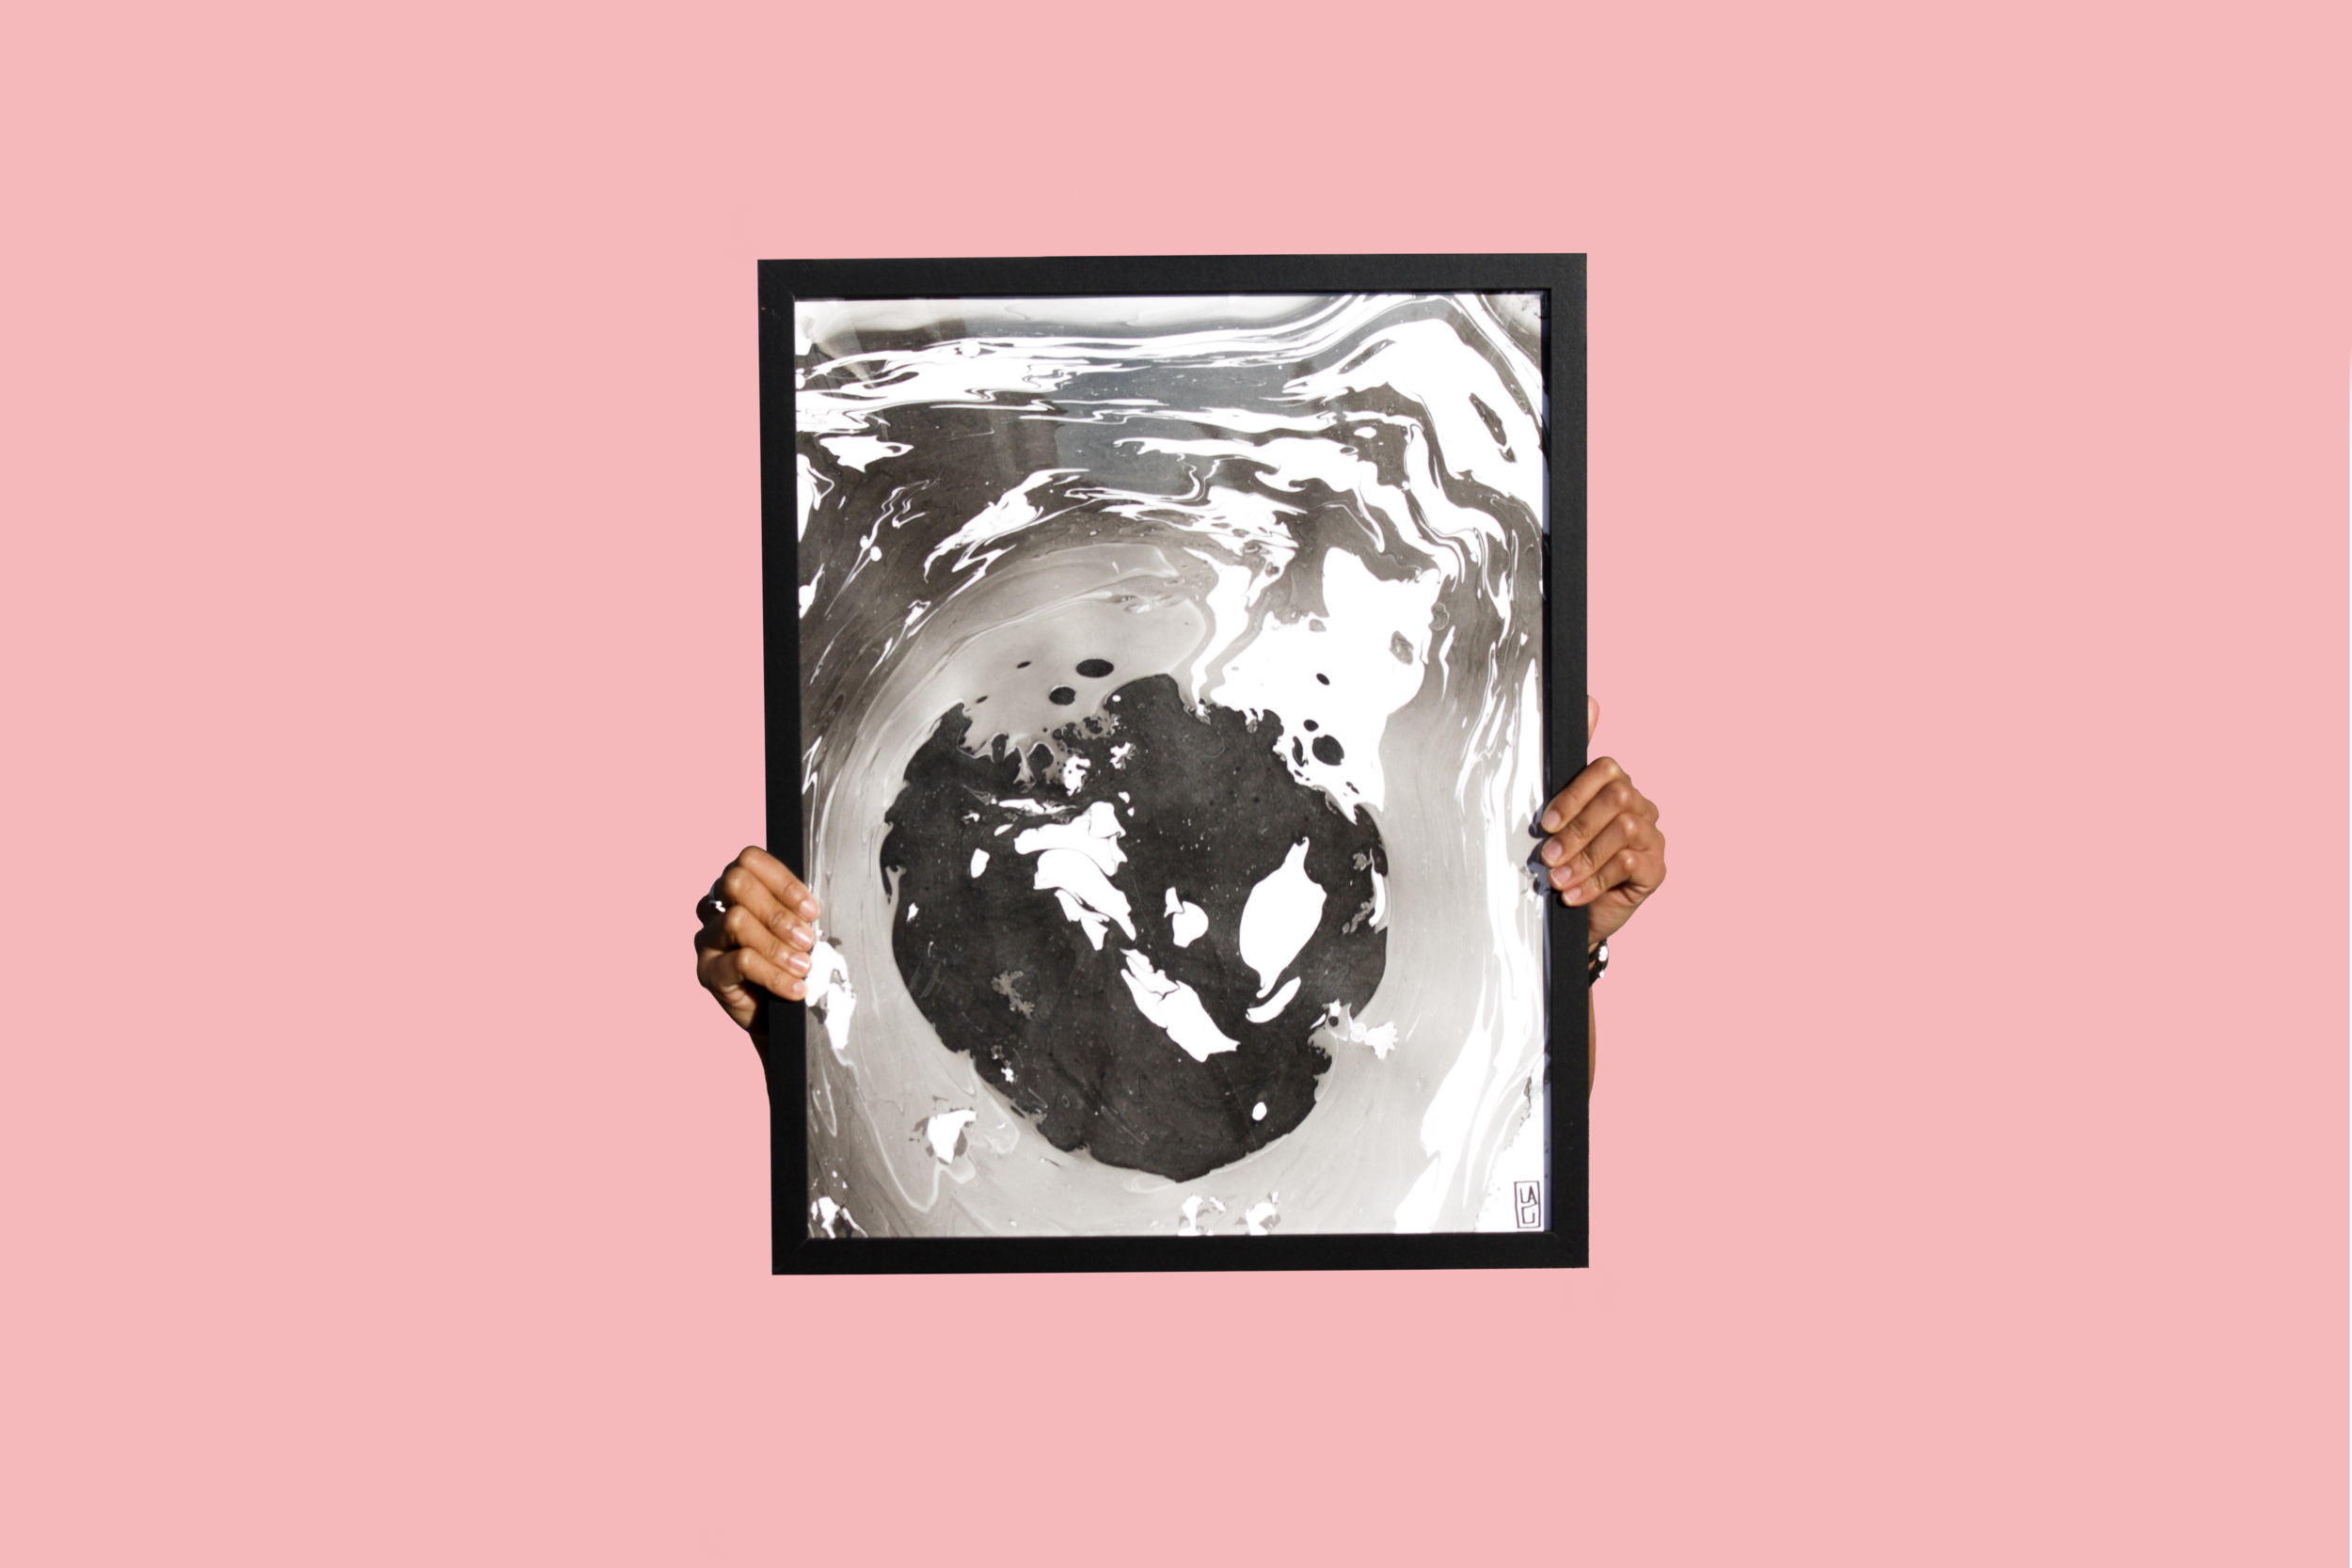 Black Marble_The Wam Design_Lalaine Magnaye_May 2019.png